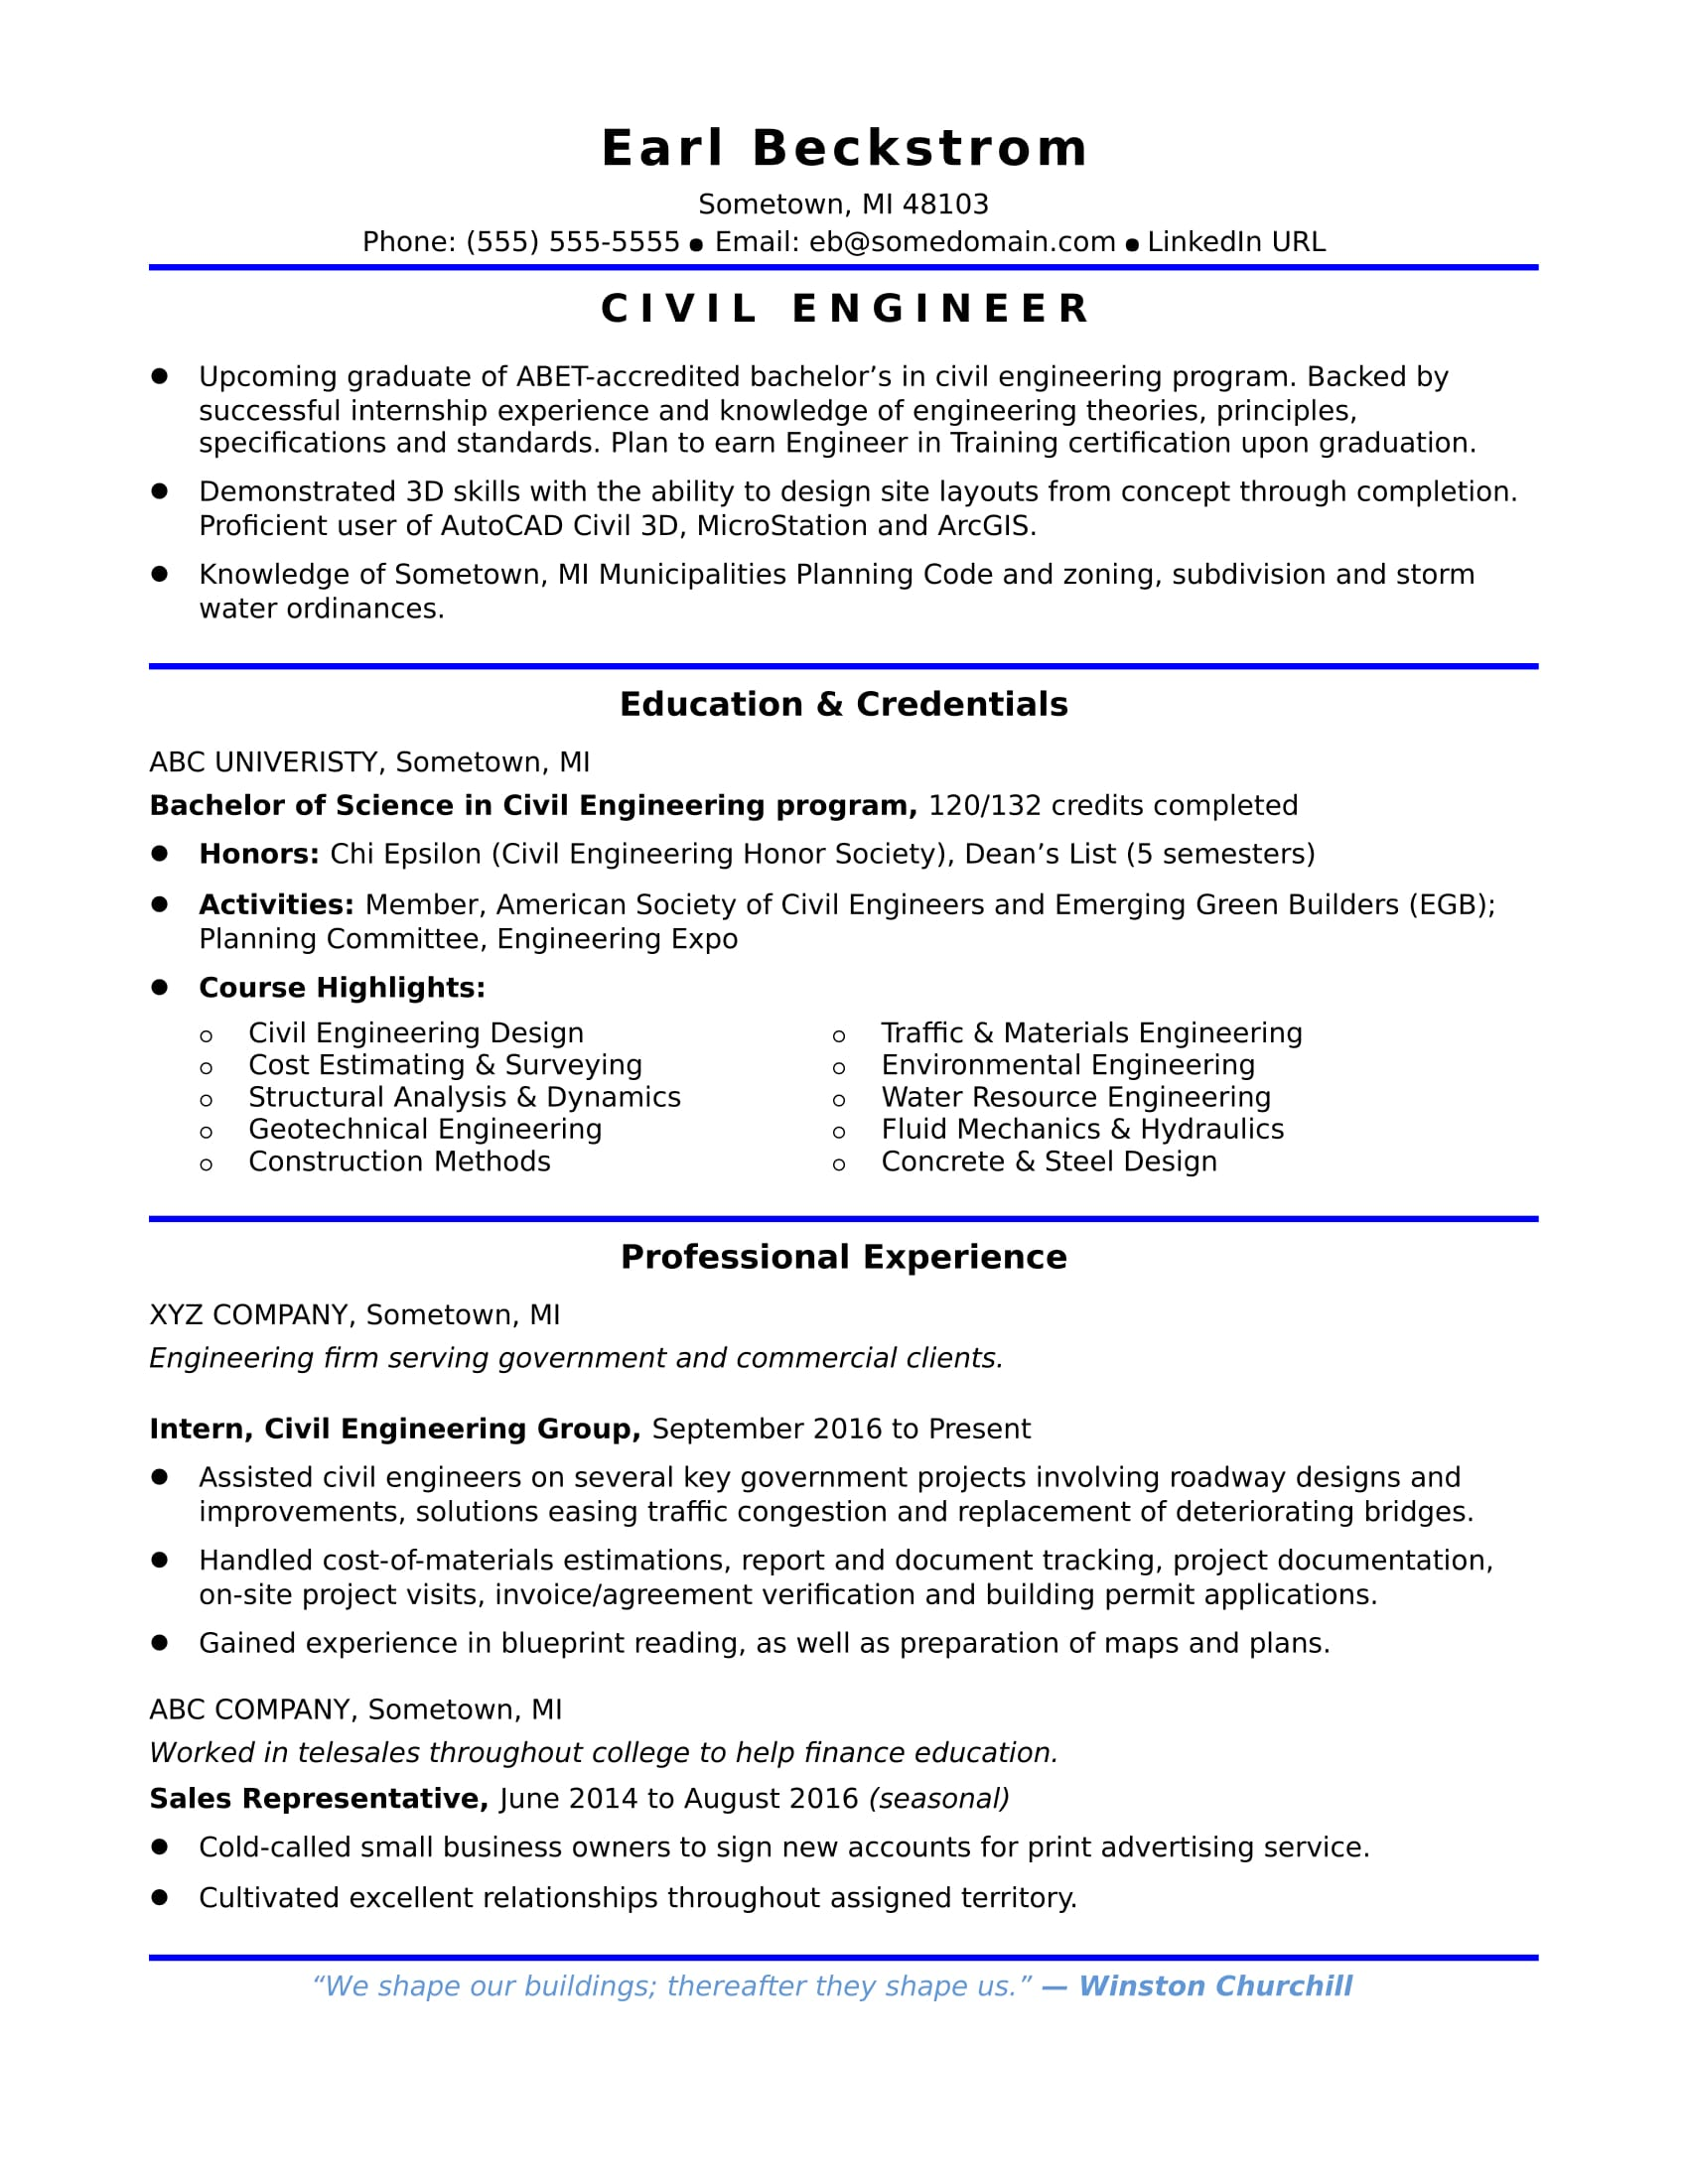 Sample resume for an entry level civil engineer monster sample resume for an entry level civil engineer 1betcityfo Gallery